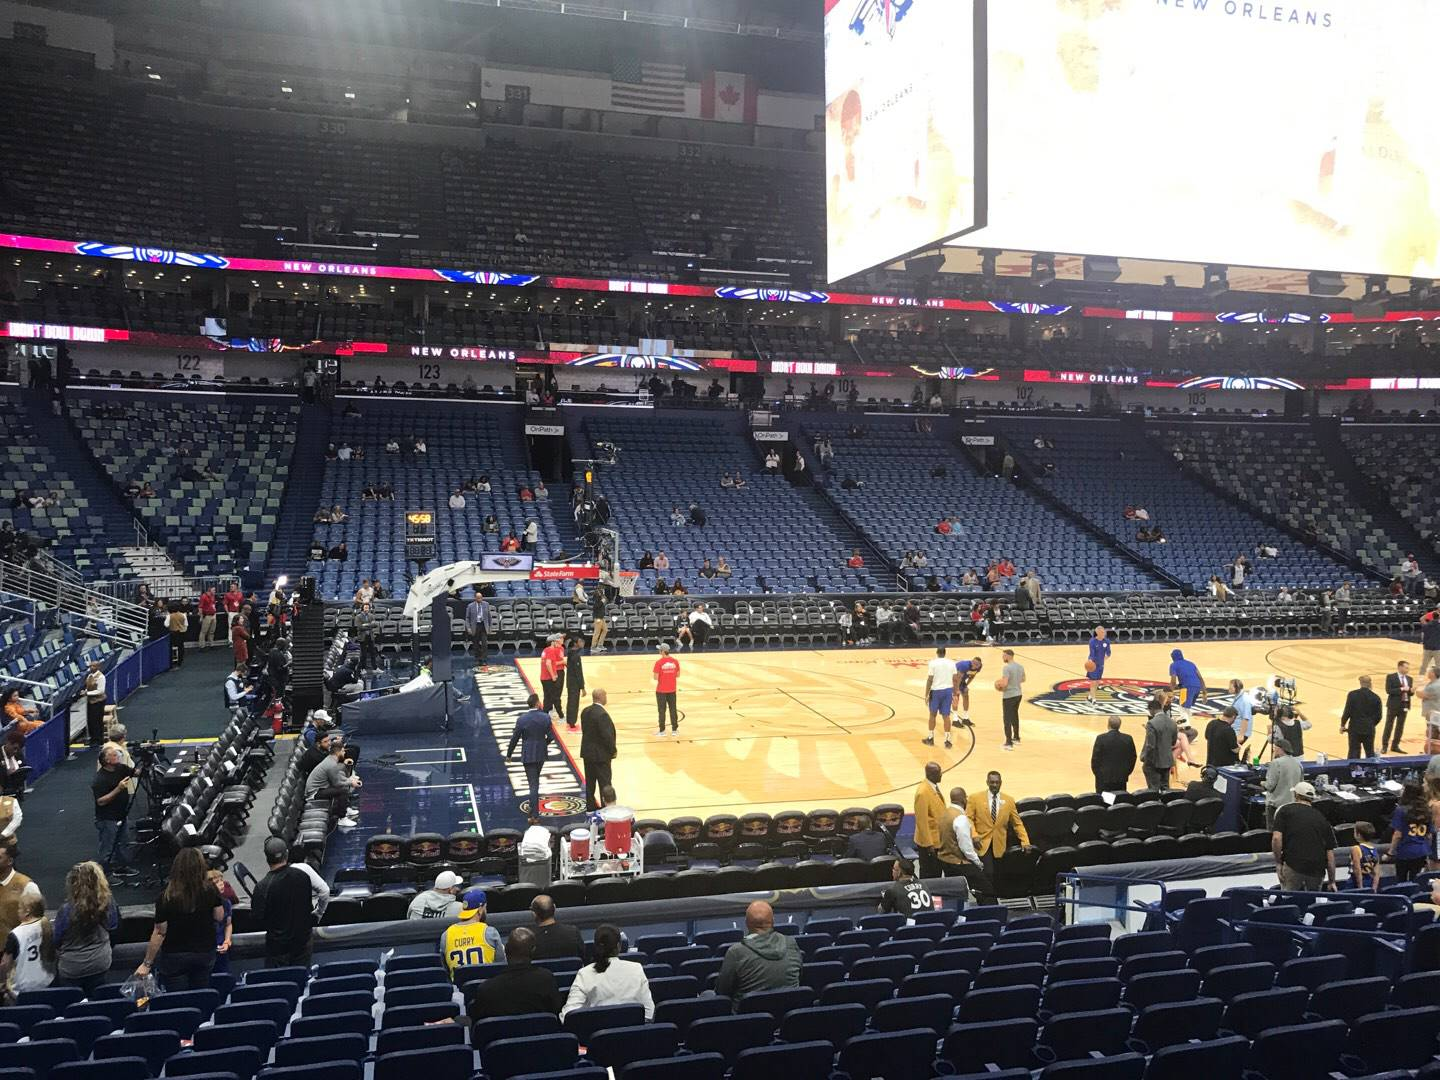 Smoothie King Center Section 114 Row 17 Seat 11